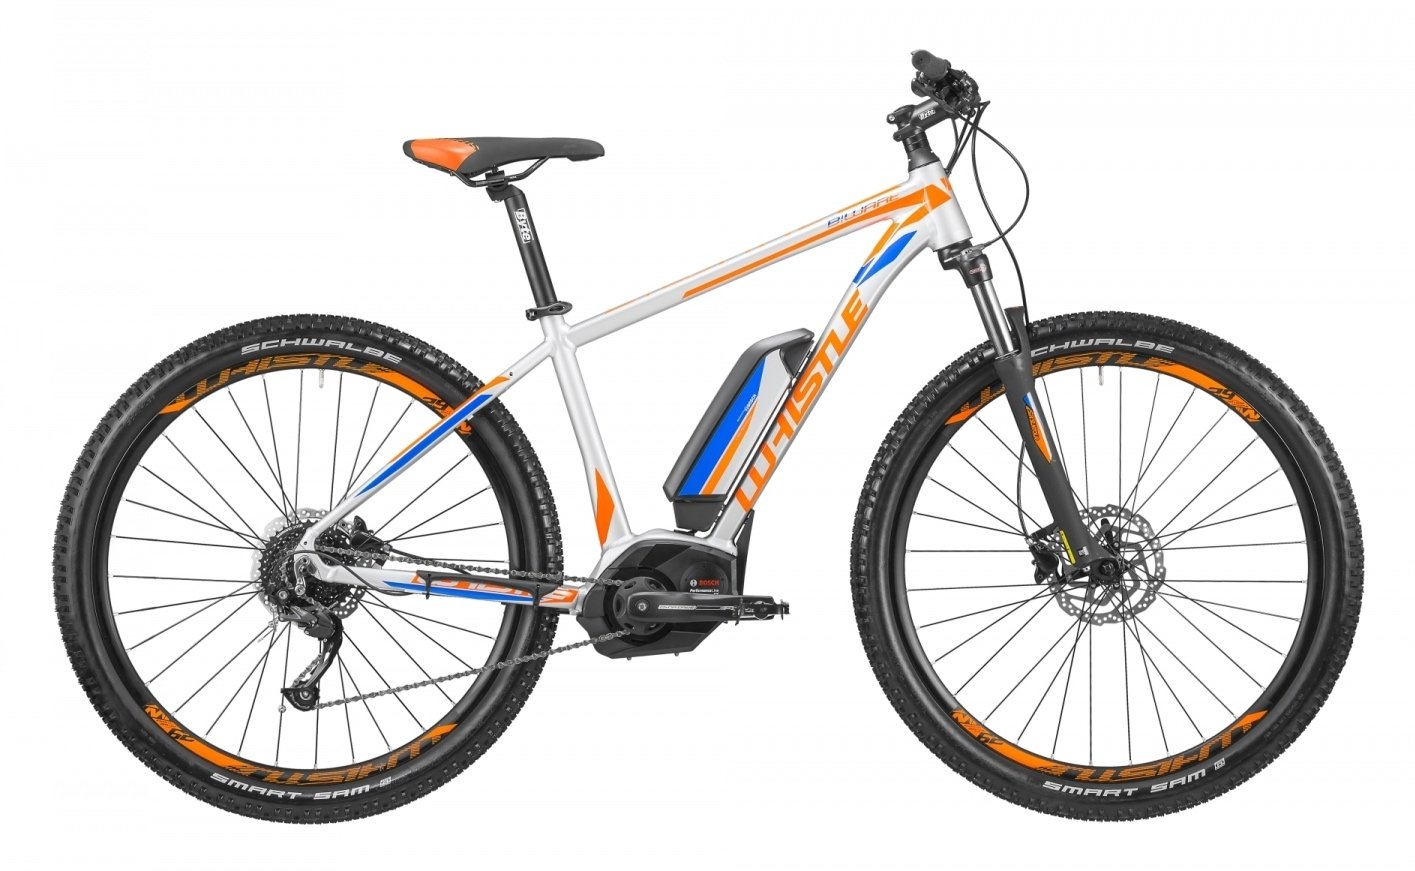 Mountain Bike eléctrica EMTB con pedalada assistita Whistle B-Ware CX 500, 9 velocidades, color gris Ultralight - Naranja, tamaño M (170 - 185 cm): ...